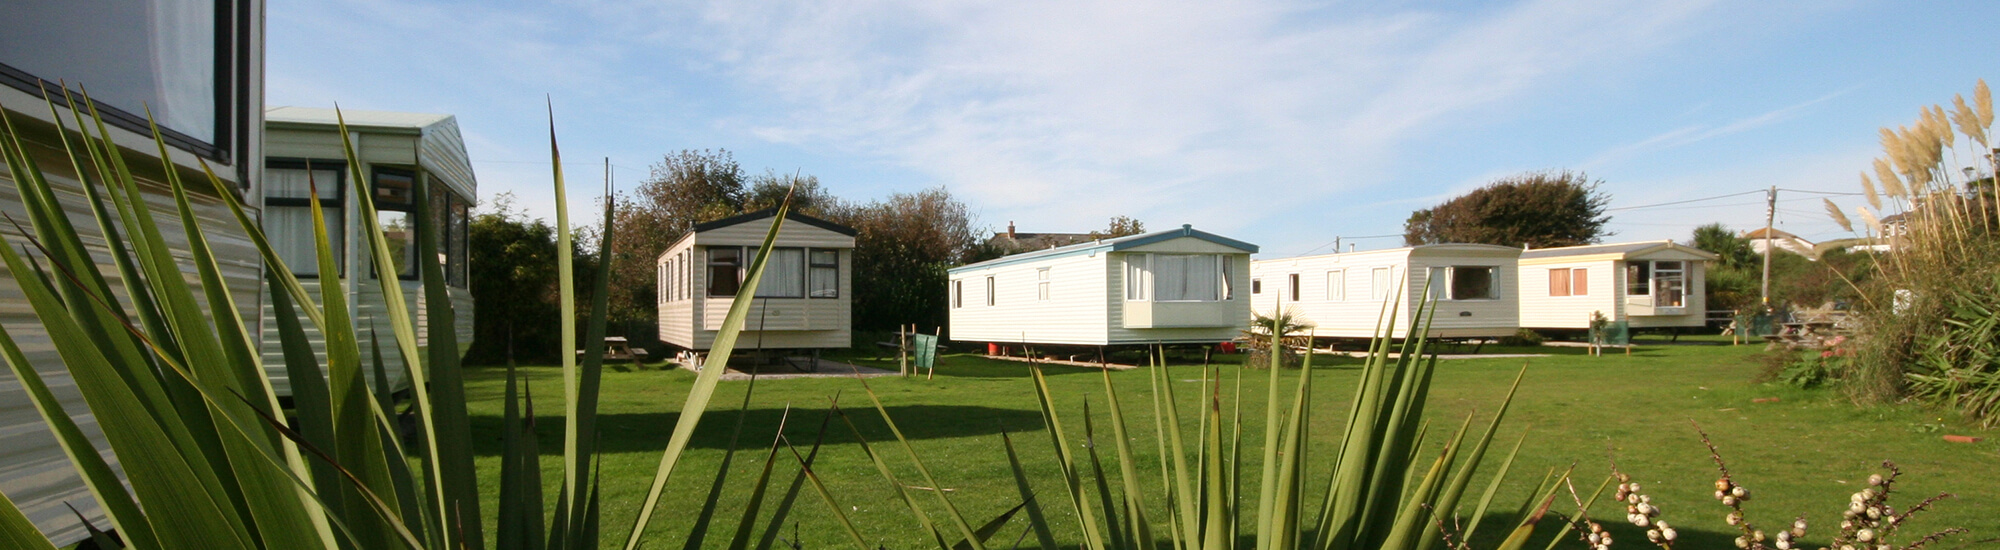 Holywell Holiday Park